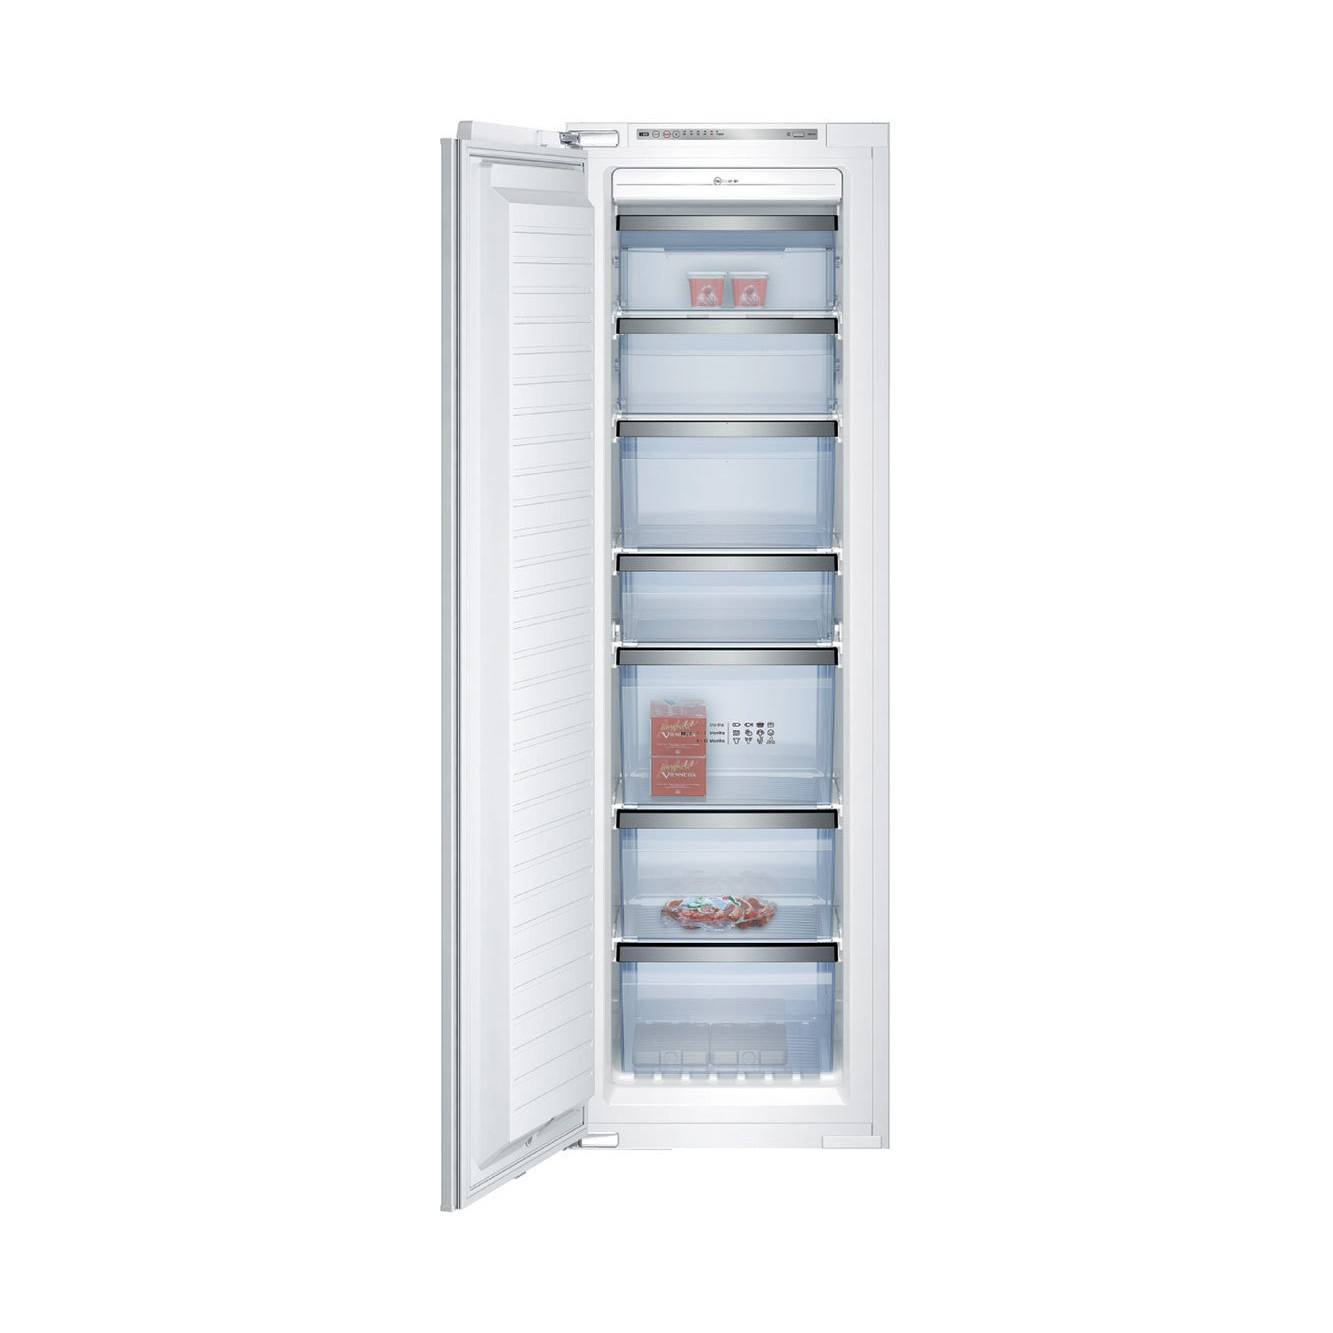 Miele Built-in Freezer: FNS 37402 i